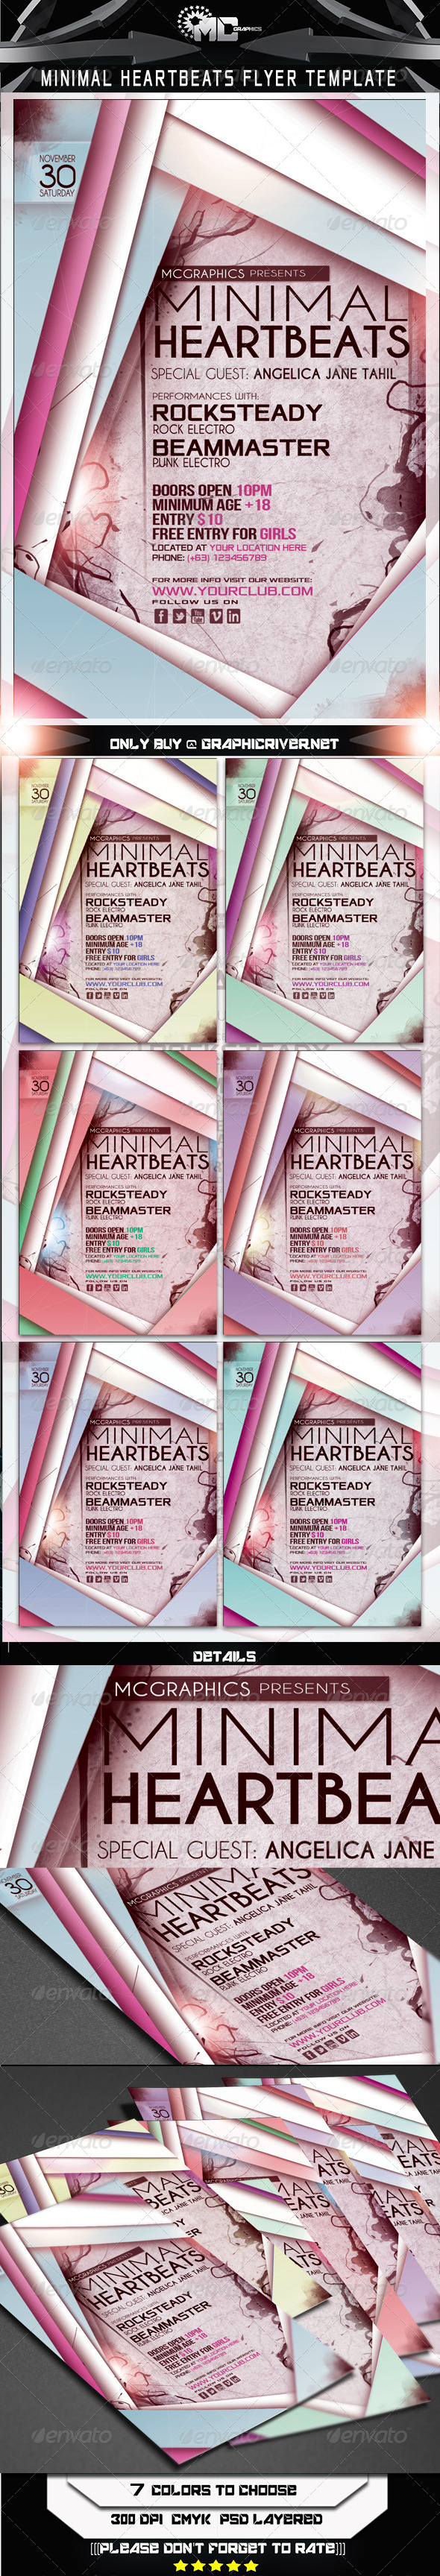 GraphicRiver Minimal Heartbeats Flyer Template 5823816